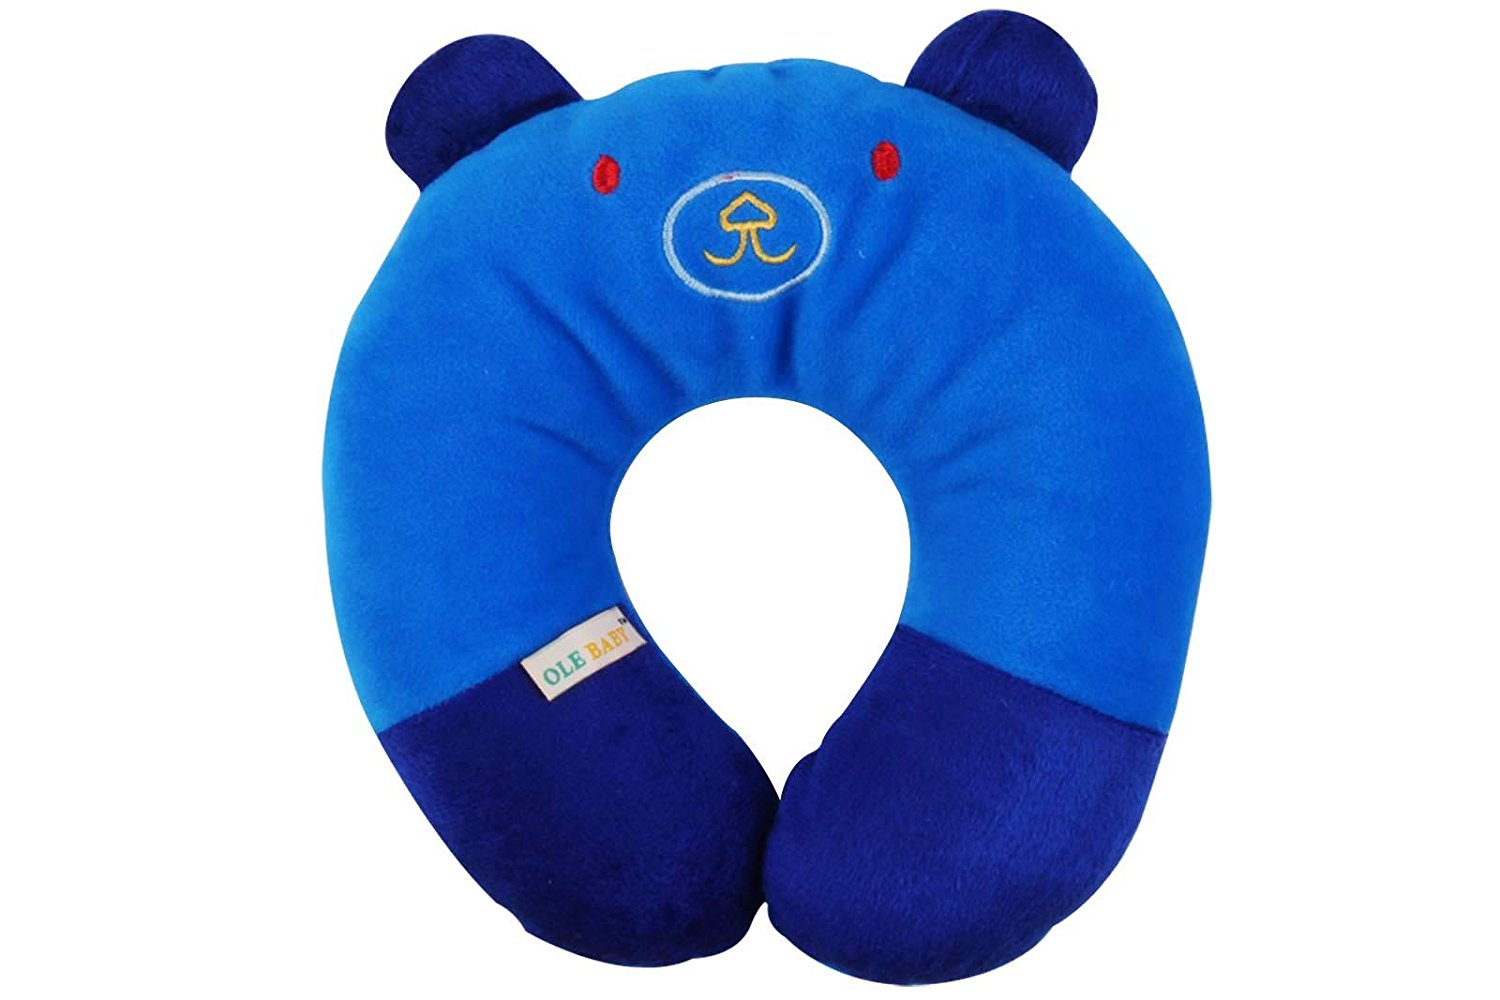 traveling pillows for kids